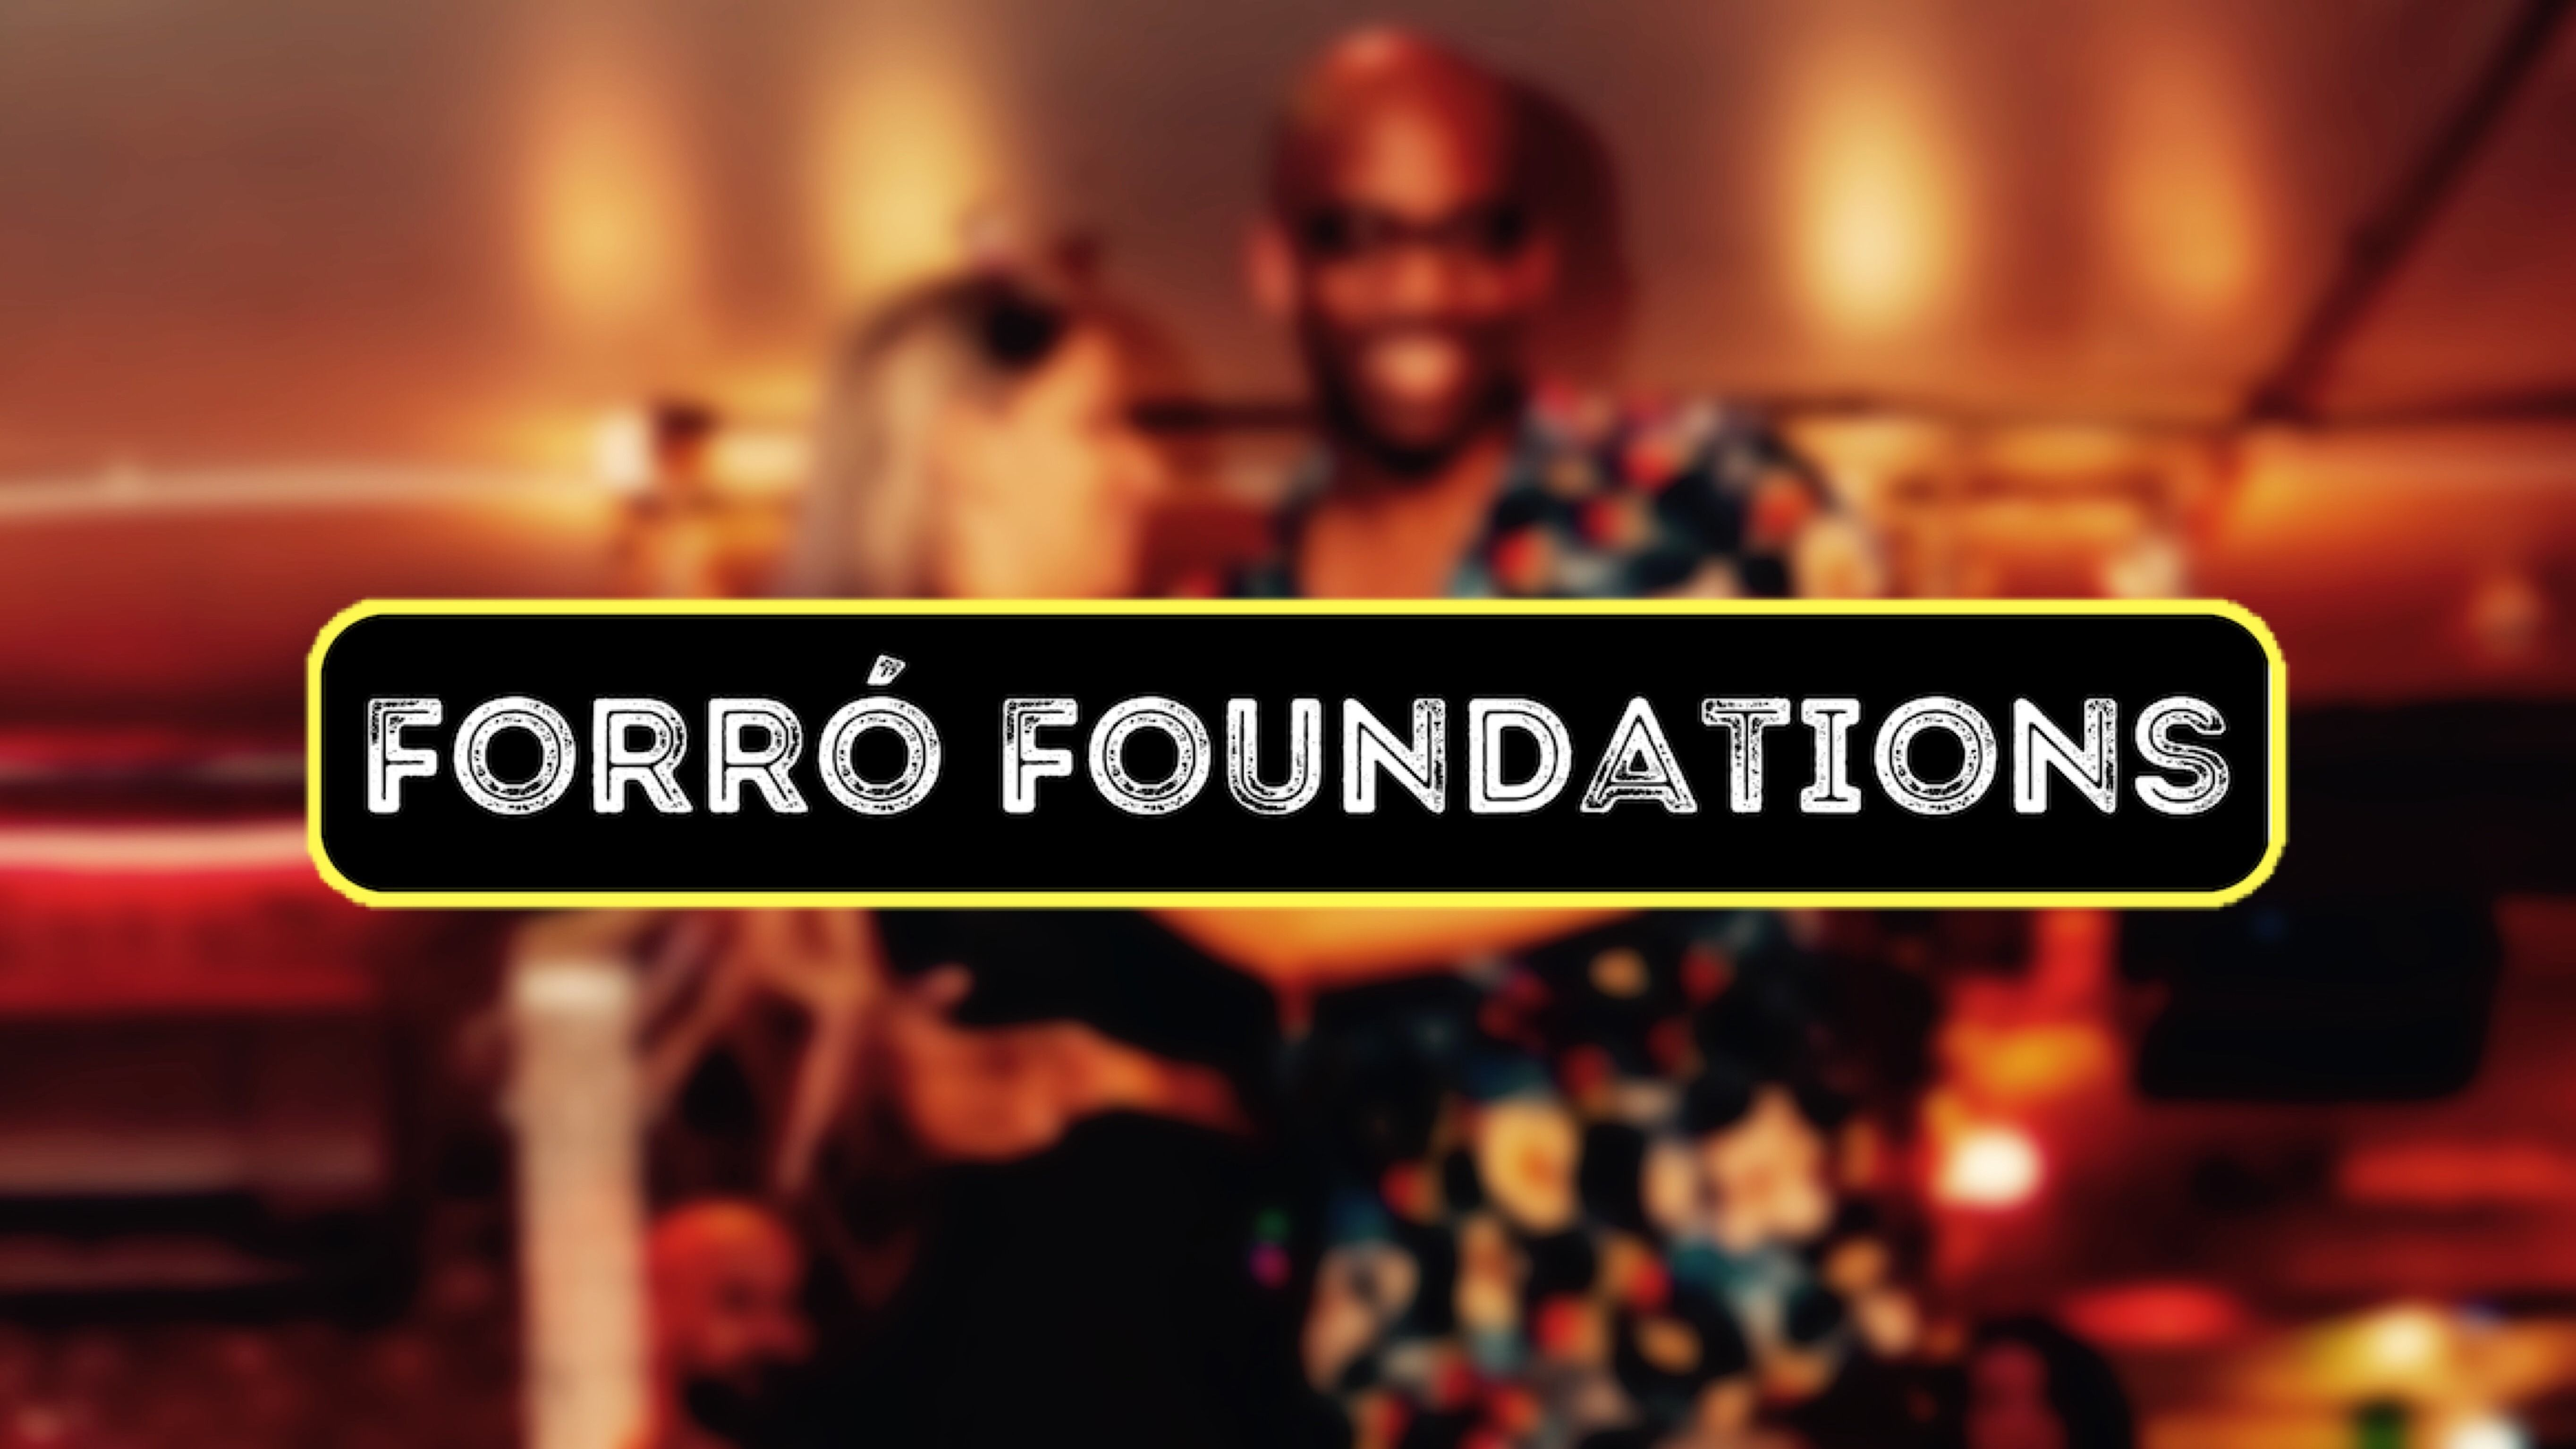 Forró Tuesday - Forró Dance Classes and Party | Meetup